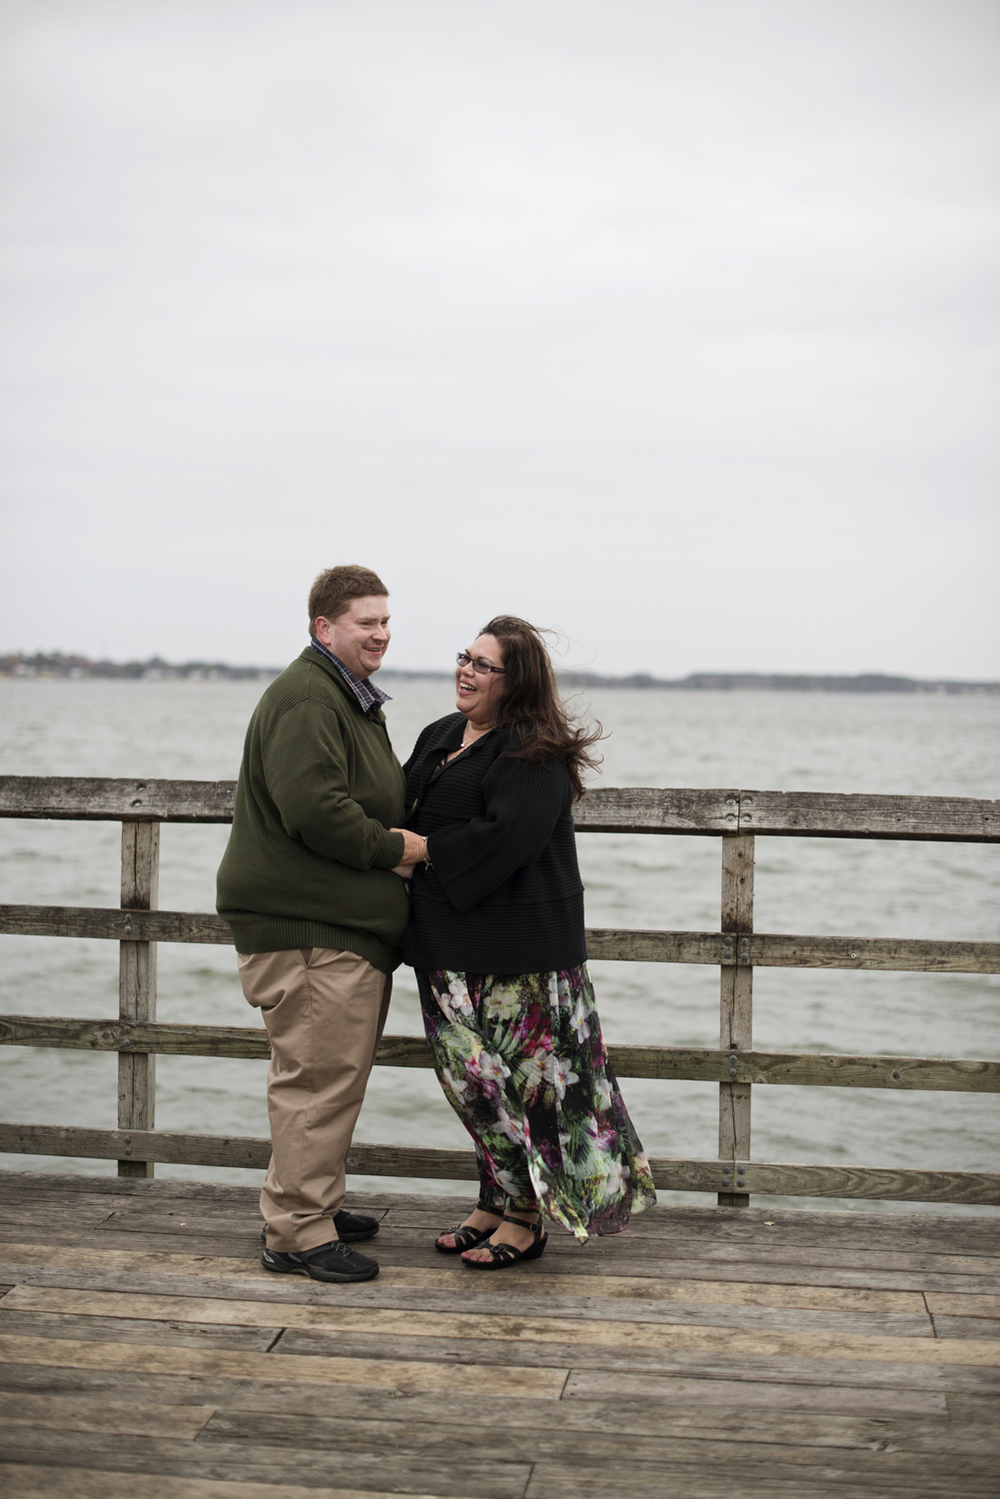 Engagement pictures on a dock by the beach